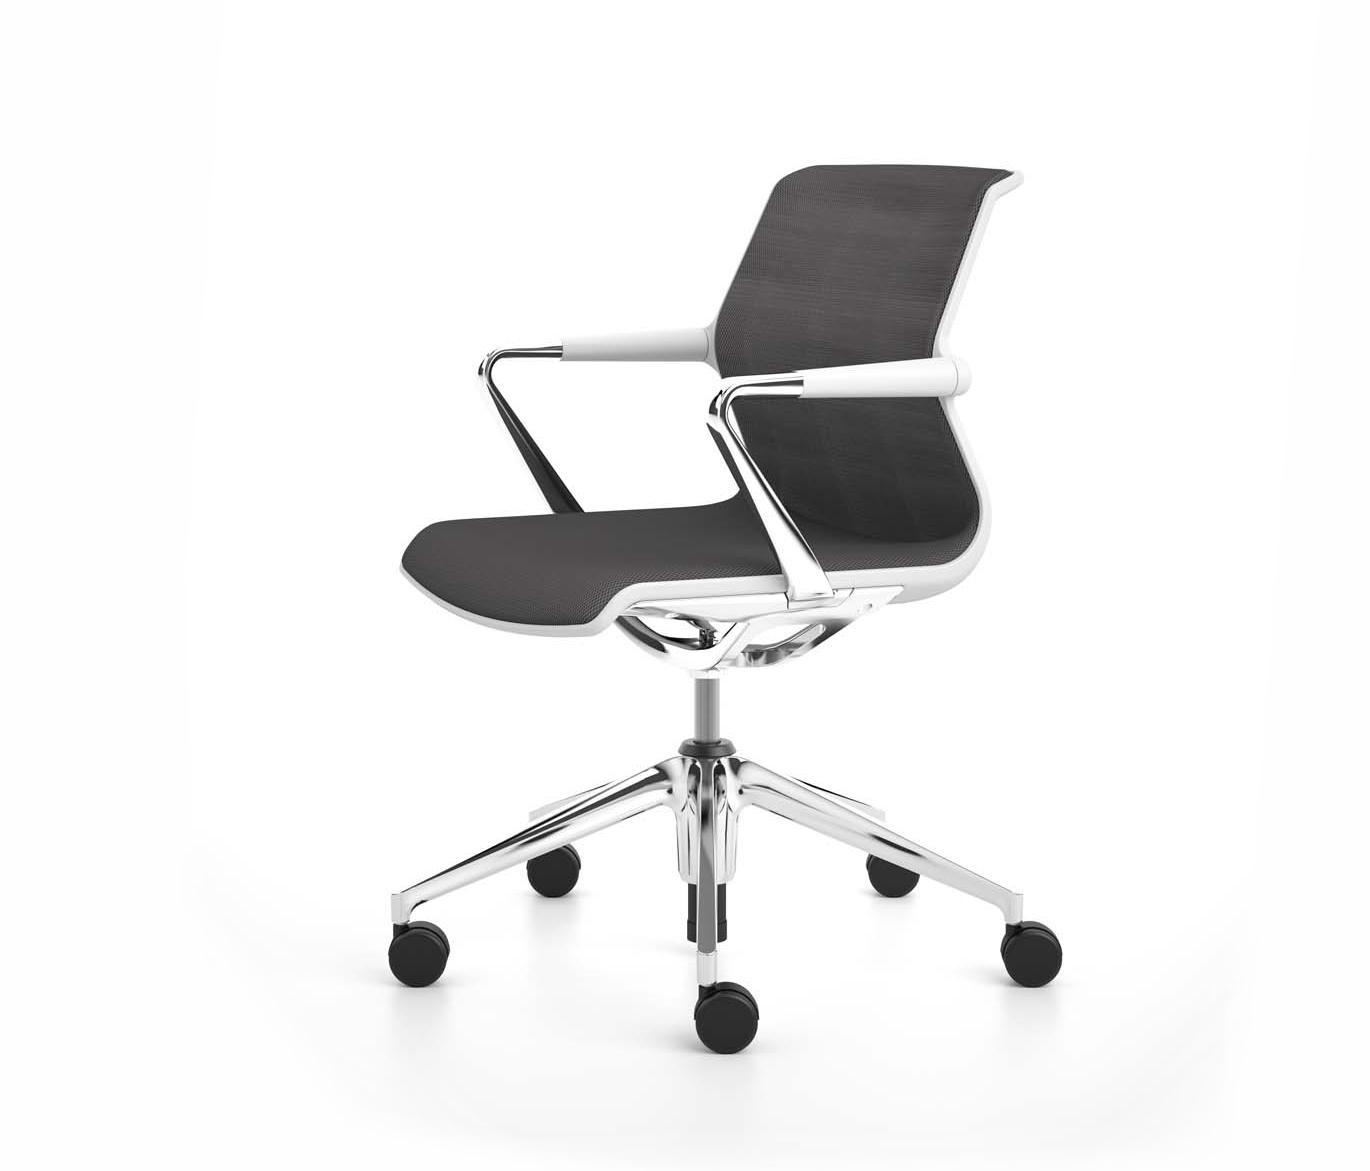 unix chair visitors chairs side chairs from vitra. Black Bedroom Furniture Sets. Home Design Ideas